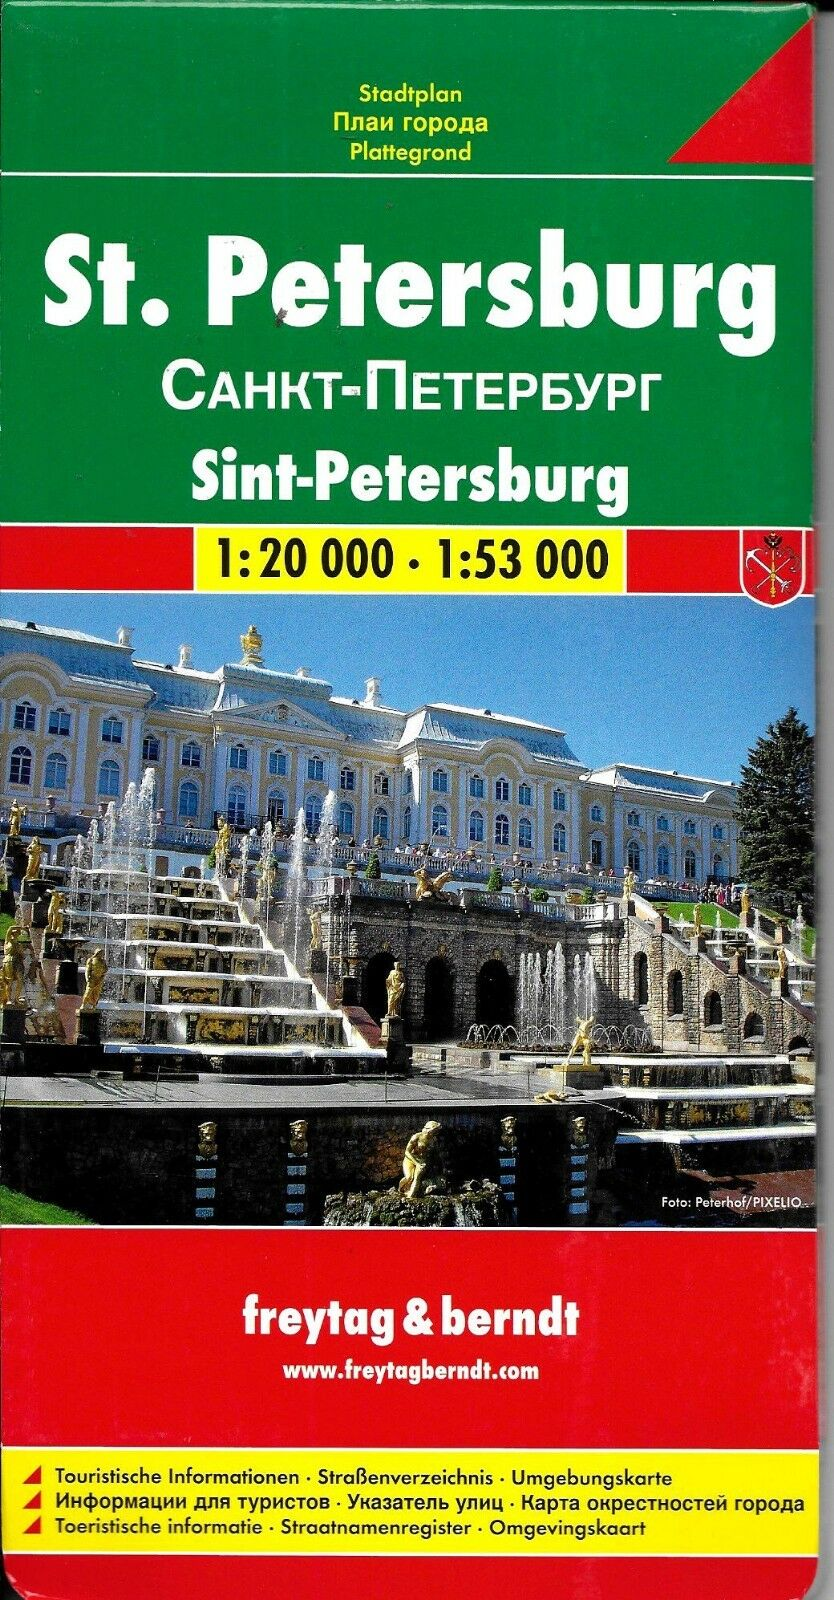 Map of St. Petersburg, Russia, by Freytag & Berndt